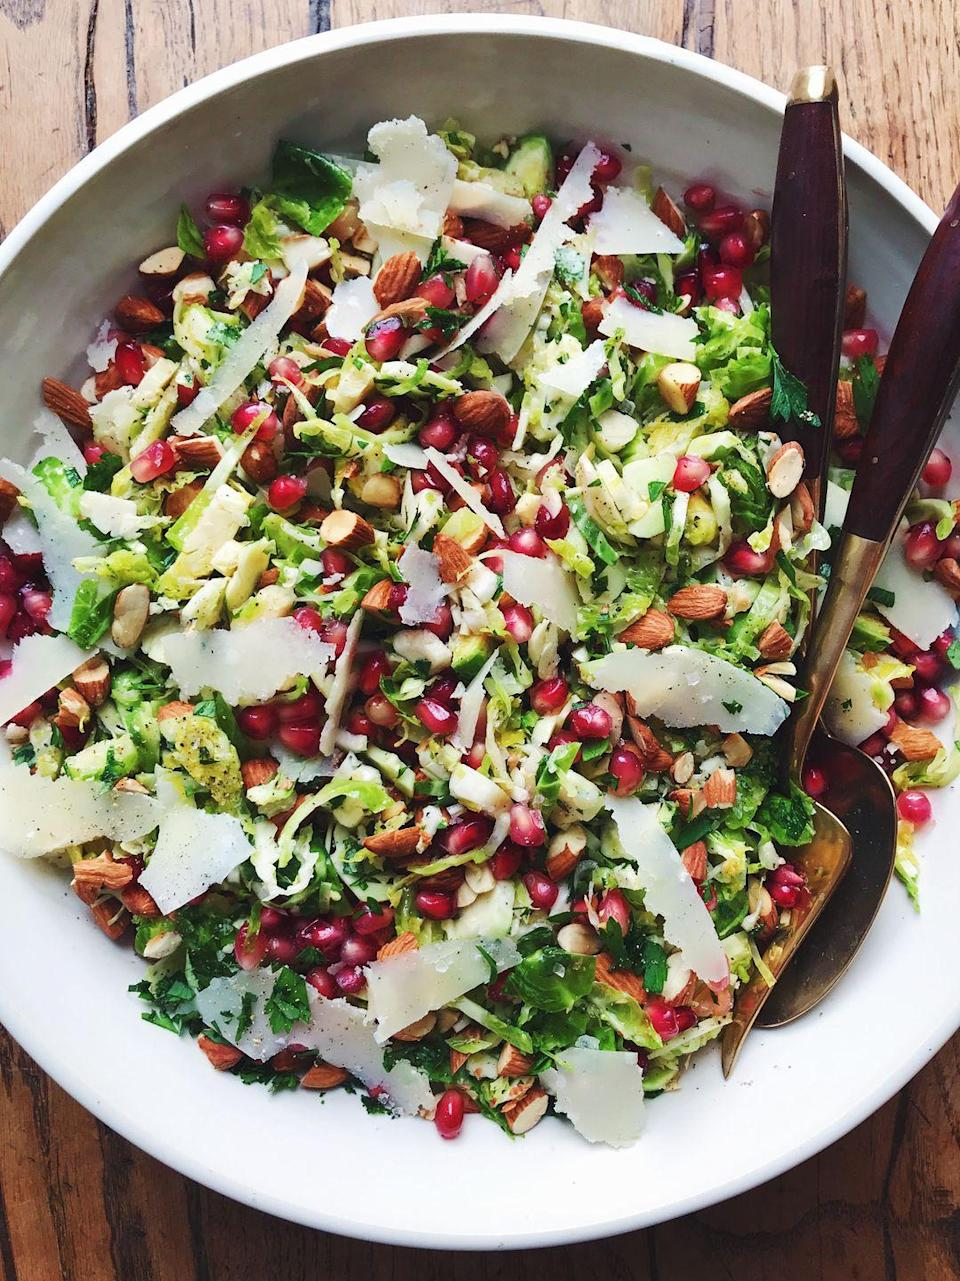 "<p>Shredded brussels>>>lettuce.</p><p>Get the recipe from <a href=""https://www.delish.com/cooking/recipe-ideas/a21085670/brussels-sprouts-salad-recipe/"" rel=""nofollow noopener"" target=""_blank"" data-ylk=""slk:Delish"" class=""link rapid-noclick-resp"">Delish</a>.</p>"